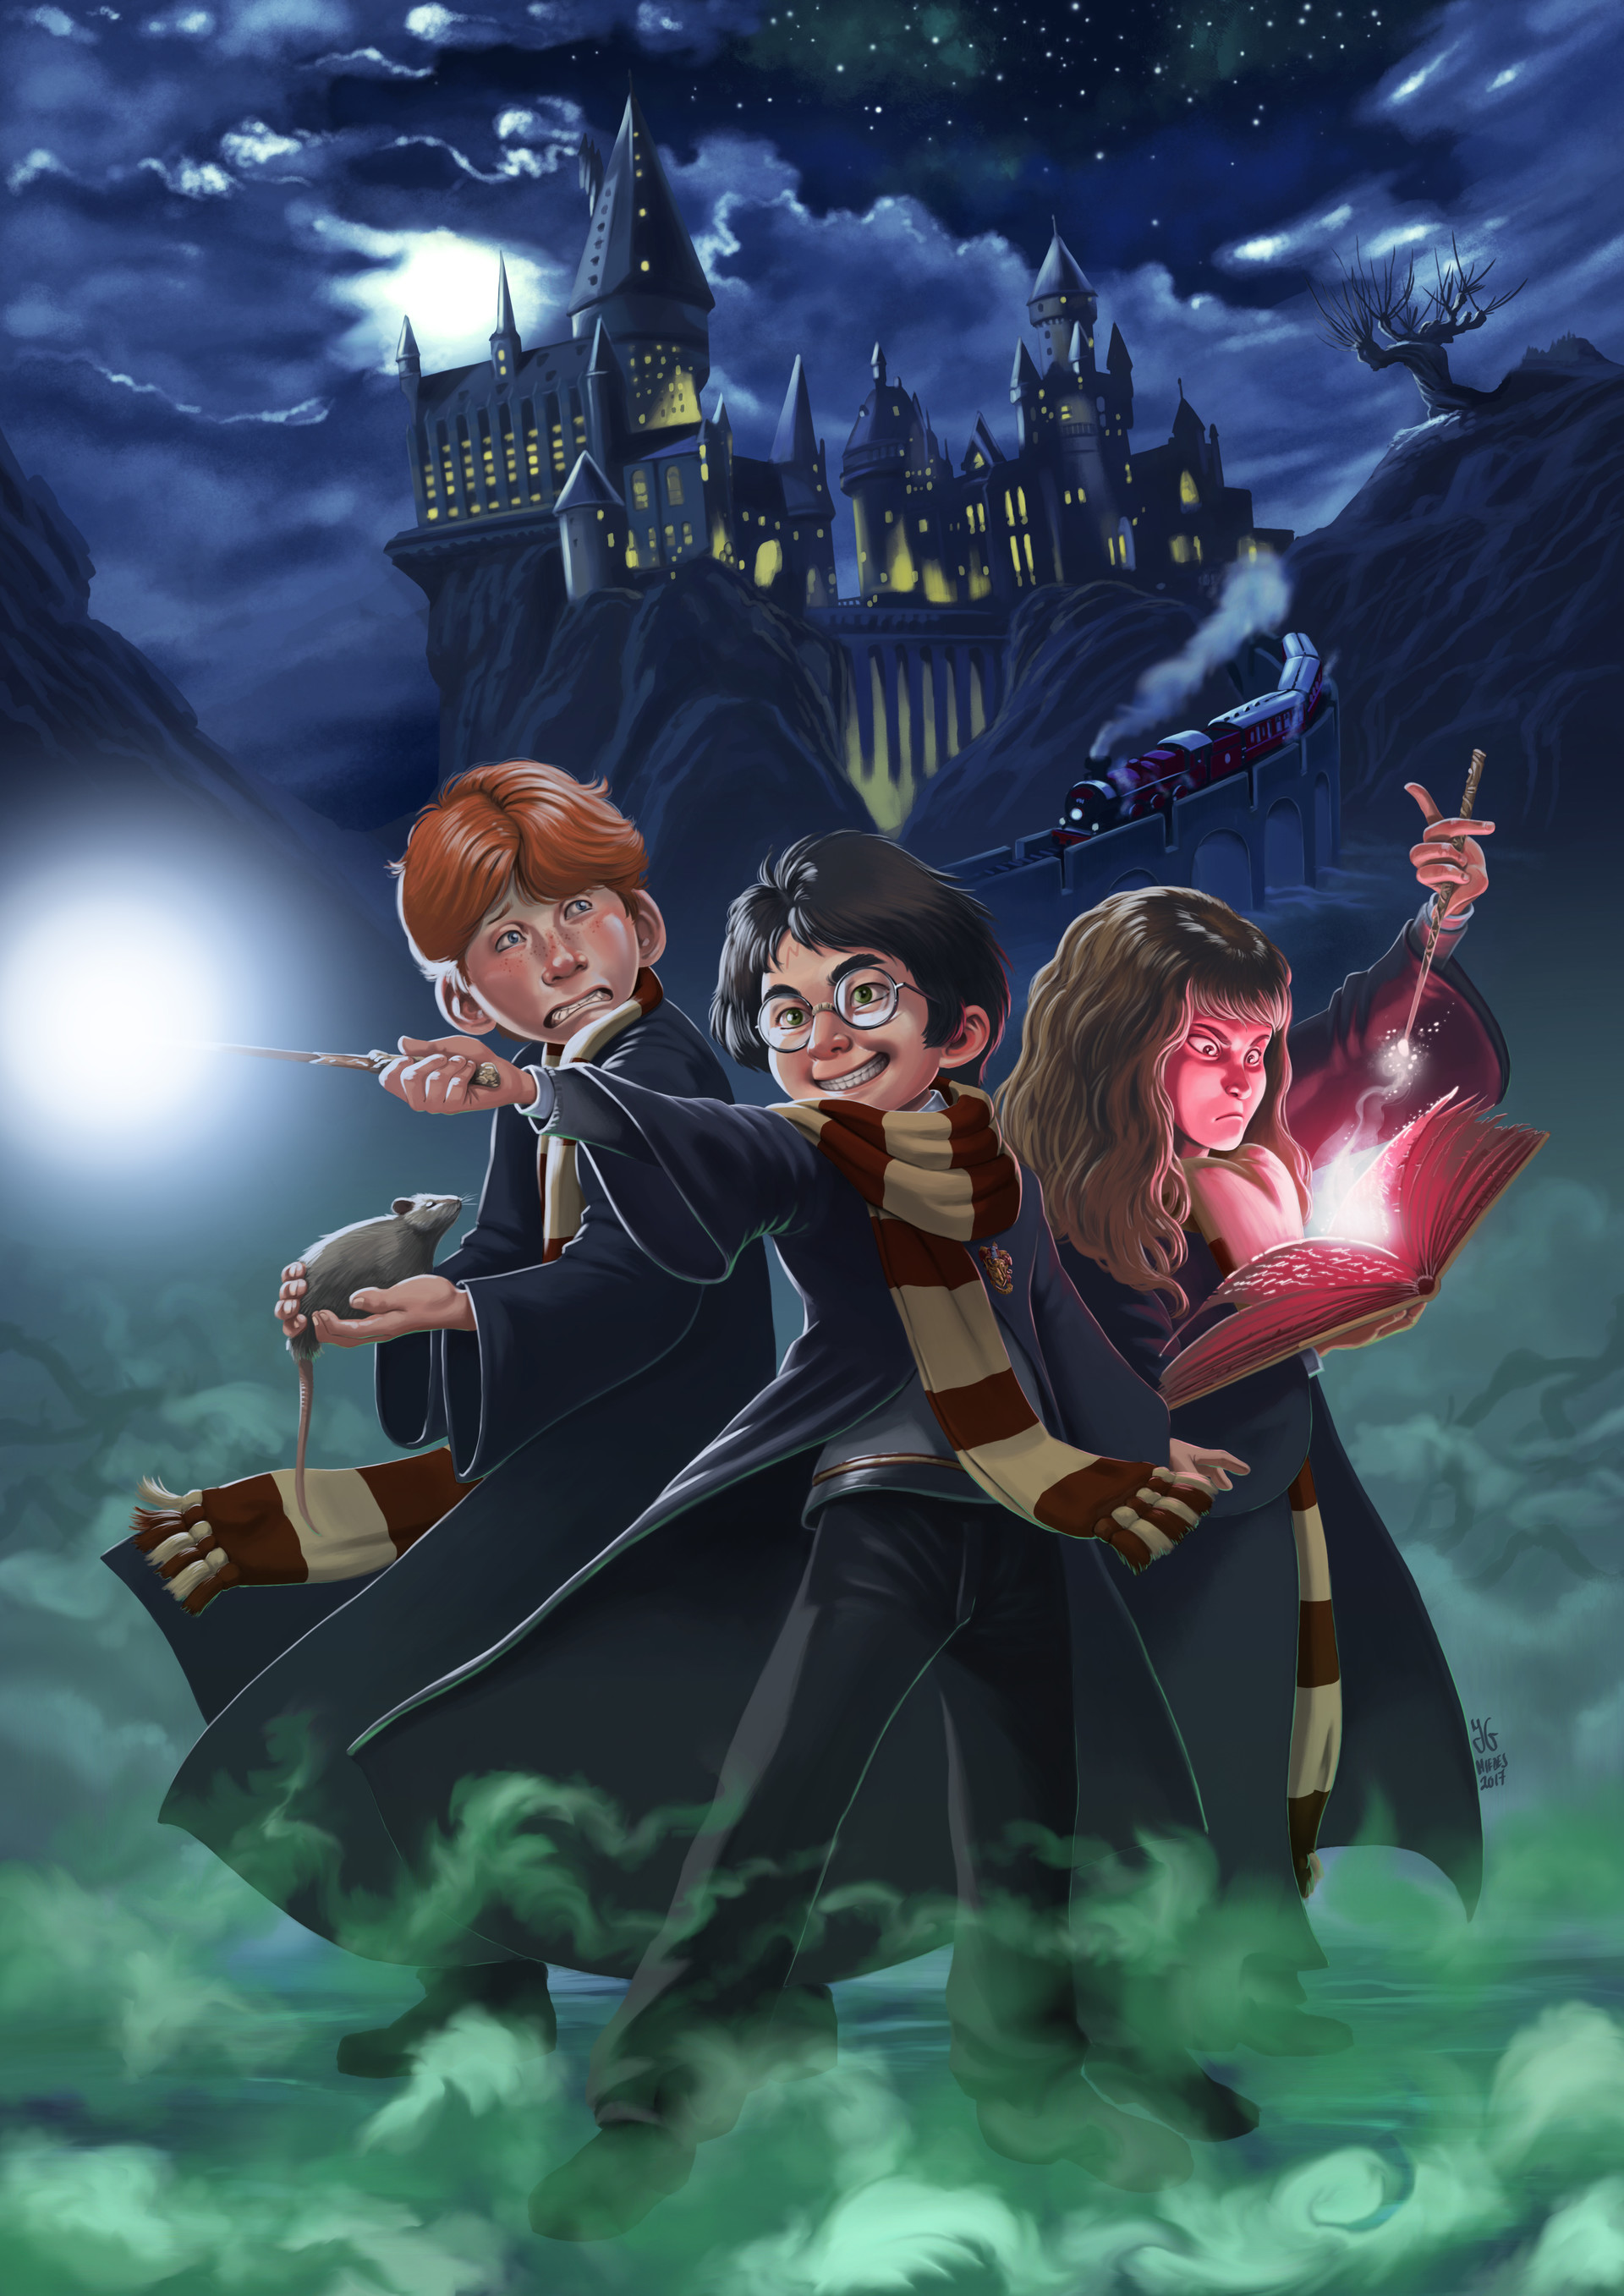 ArtStation - Fanart: Harry Potter, J G  Miedes